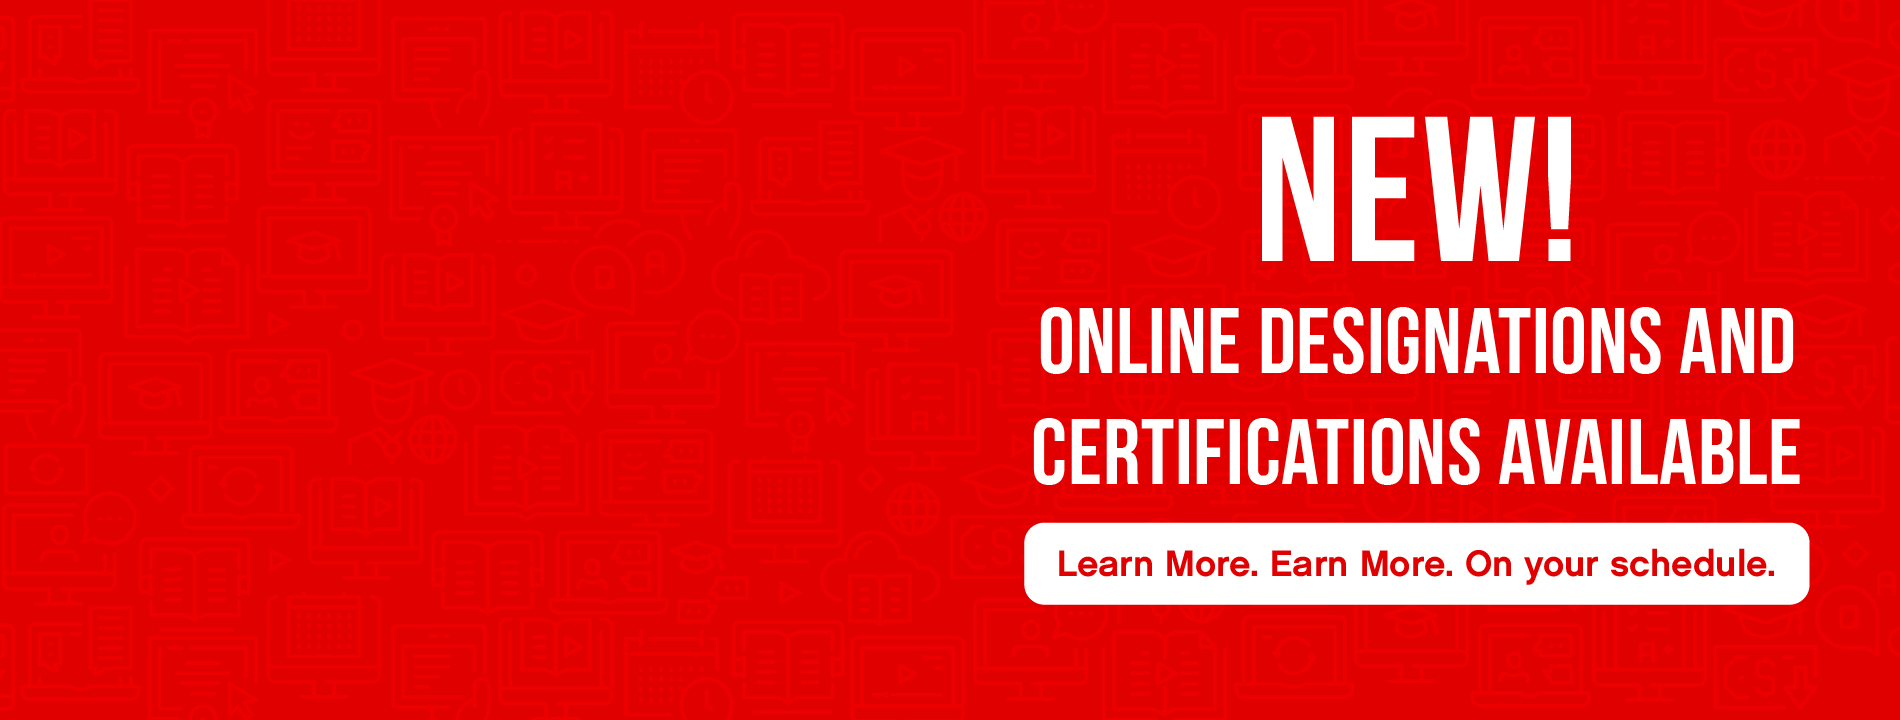 Online Designations and Certifications Website Slider